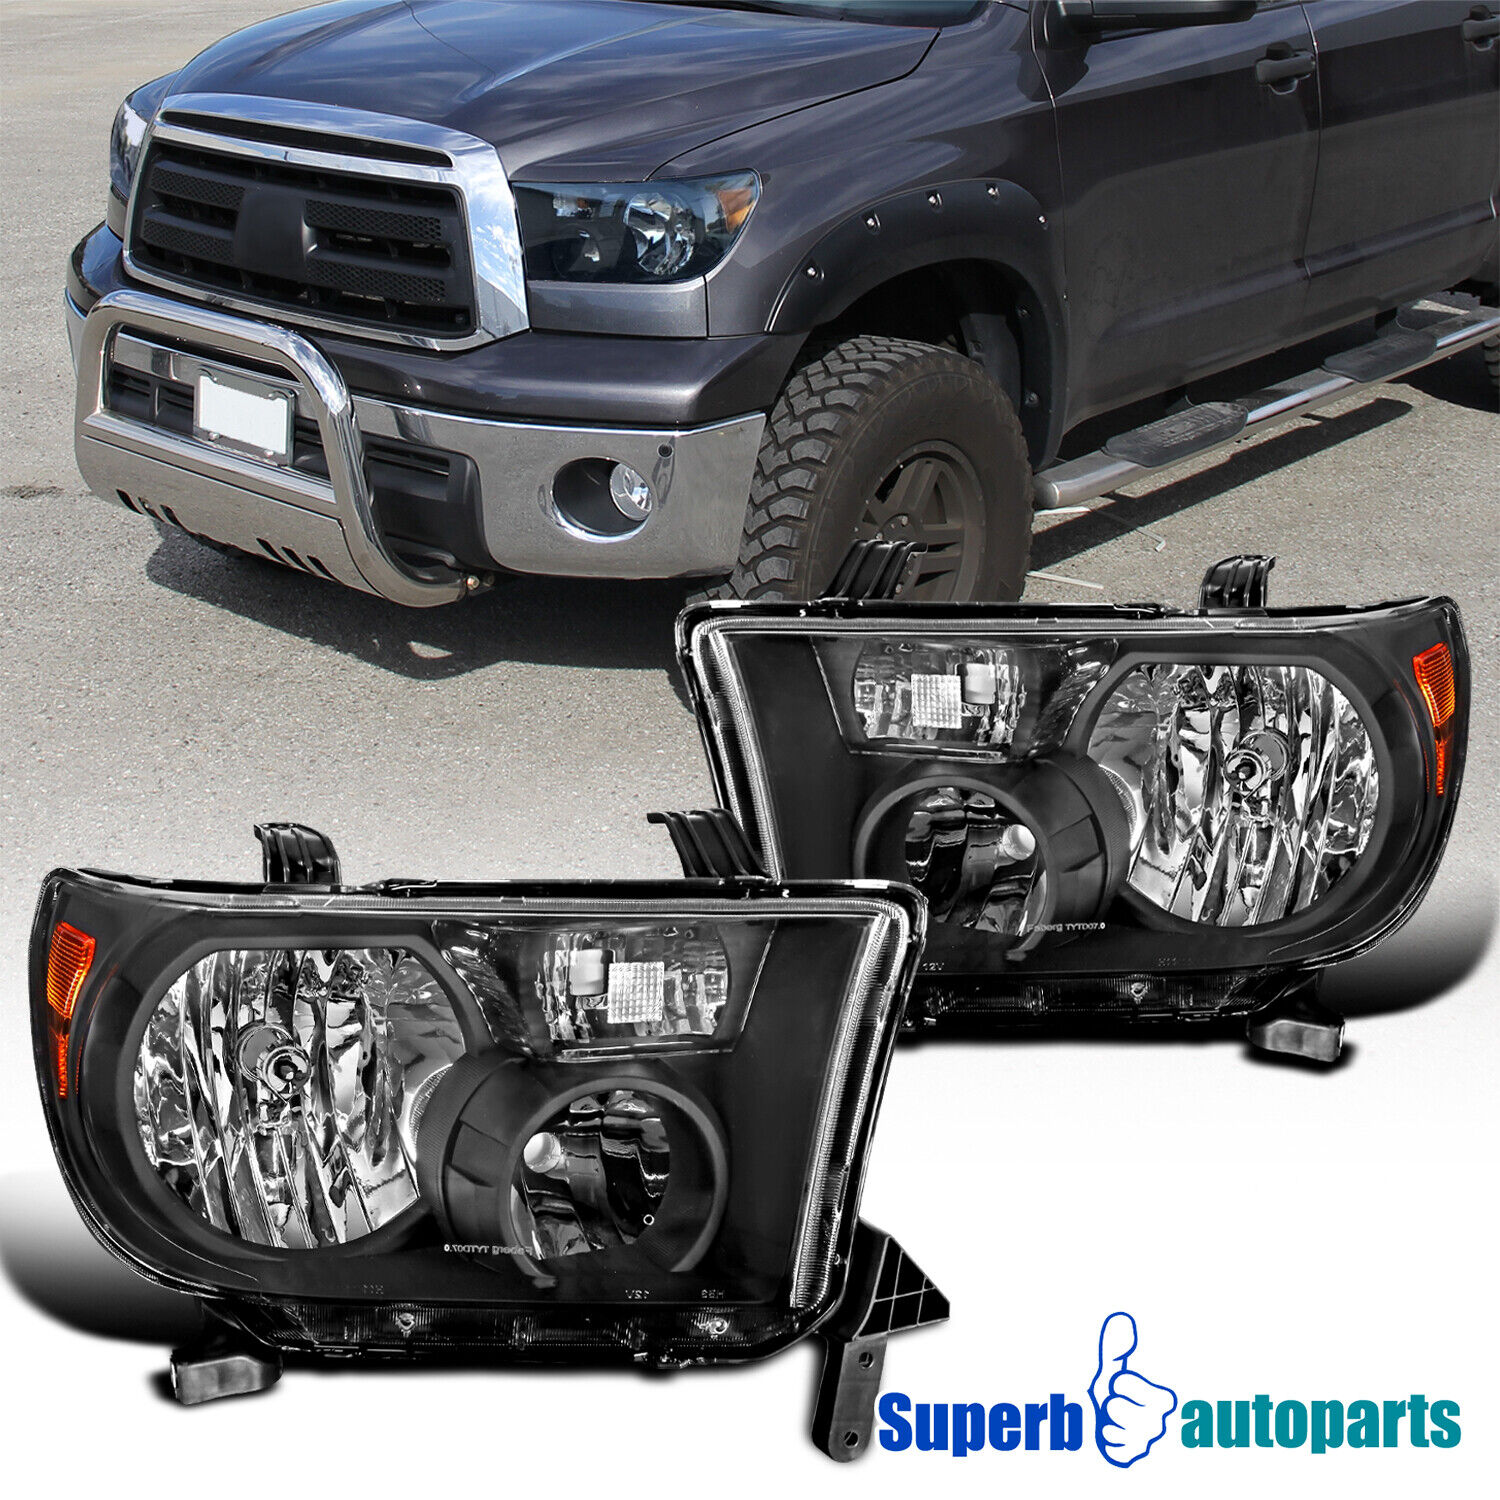 Car Truck Parts Automotive For 2000 2004 Toyota Tundra Headlights Head Lamps Chrome Clear Set Pair Lh Rh